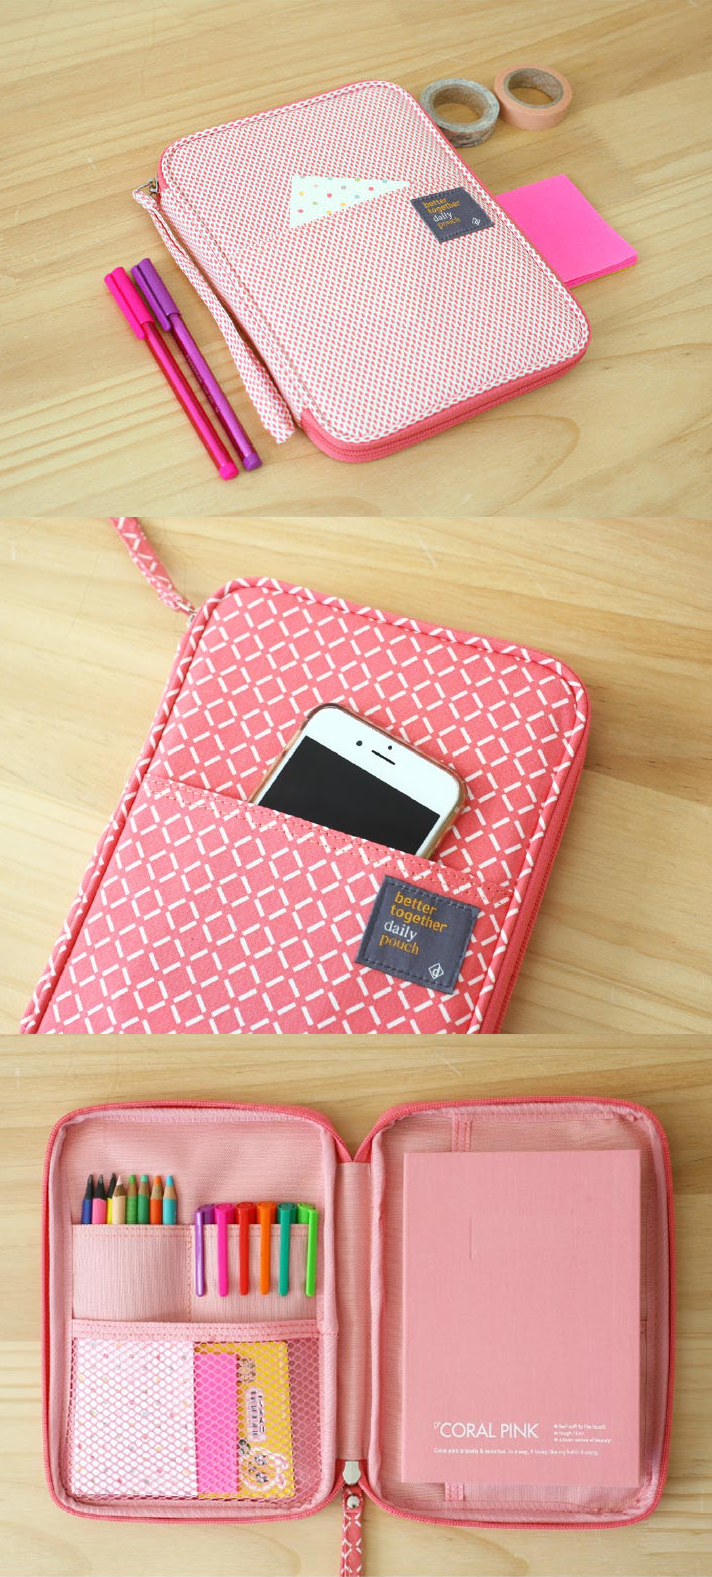 Our popular and multi-use Better Together Daily Pouch introduces 4 NEW beautiful designs and colors! Elegant violet square, perfect pink square, awe-inspiring pink rain, and classic gray leaf styles are now in and ready for you to use their many pockets for so many uses, such as for school, craft organizer, iPad case, travel buddy and more!